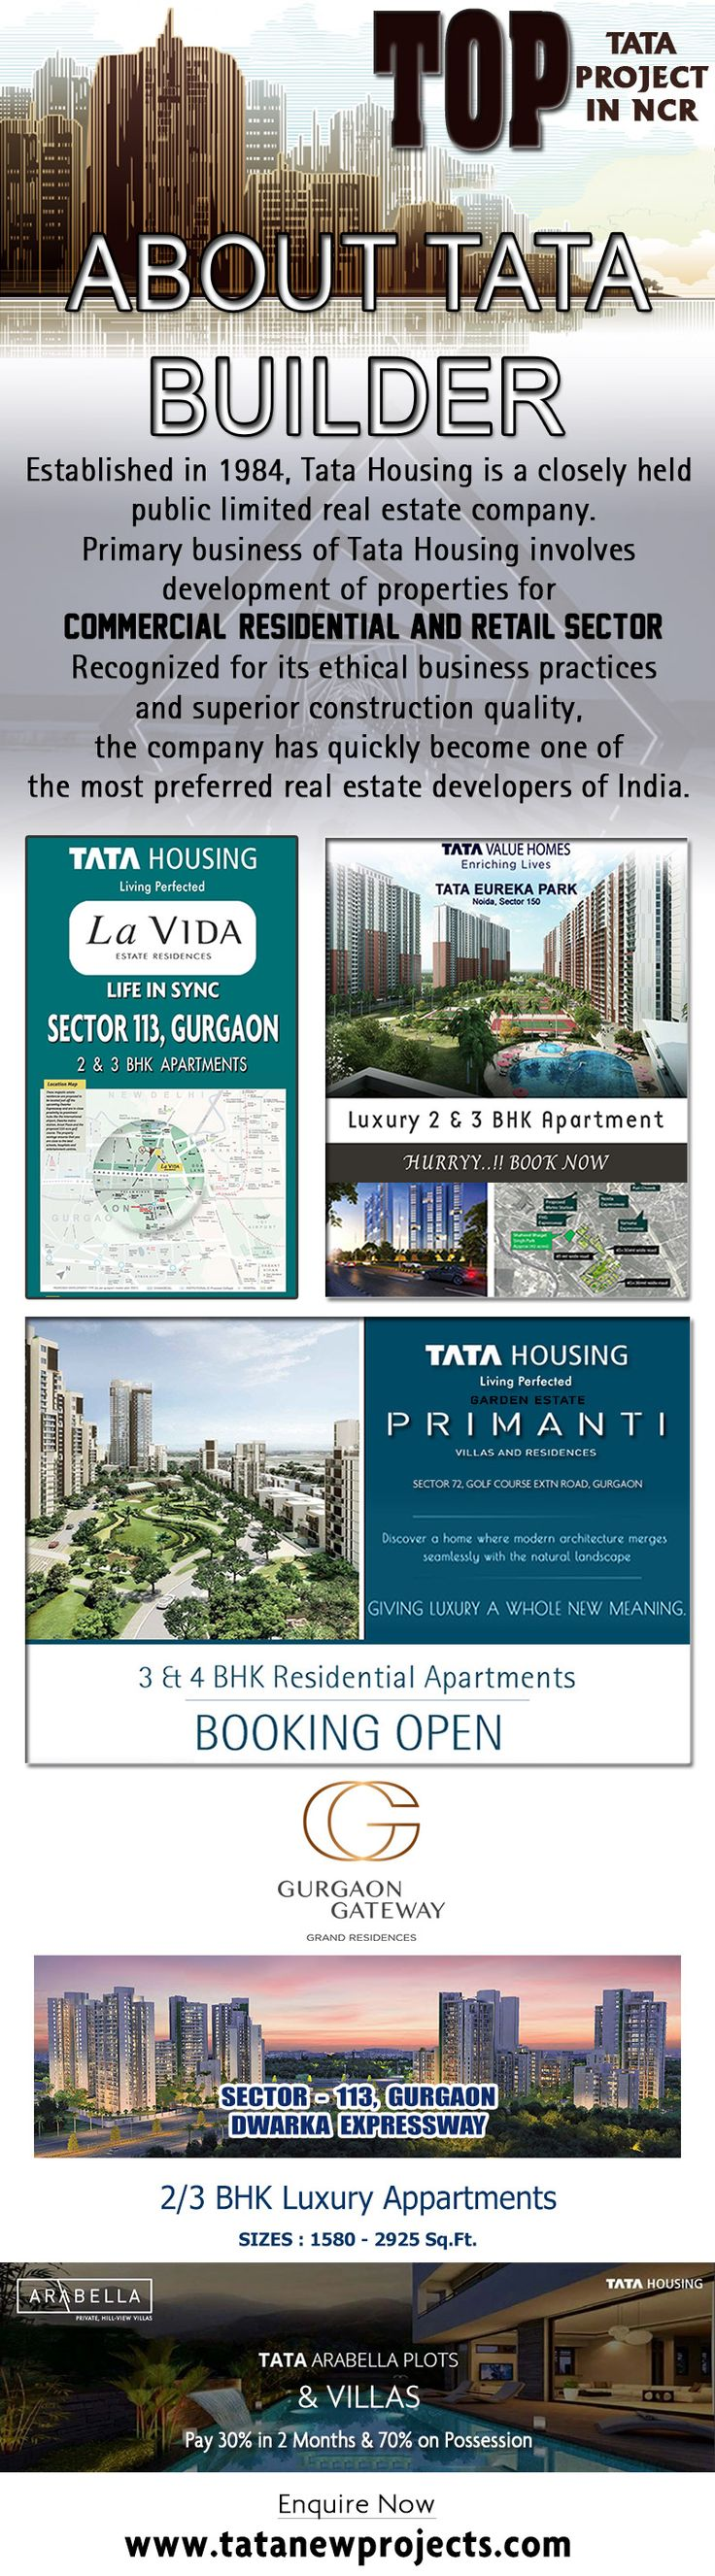 Tata Housing the well known builder of India has entered NCR which is the most promising part of India. NCR gives you the most amazing blend of residential, commercial and retail sector. To know more, http://www.tatanewprojects.com/